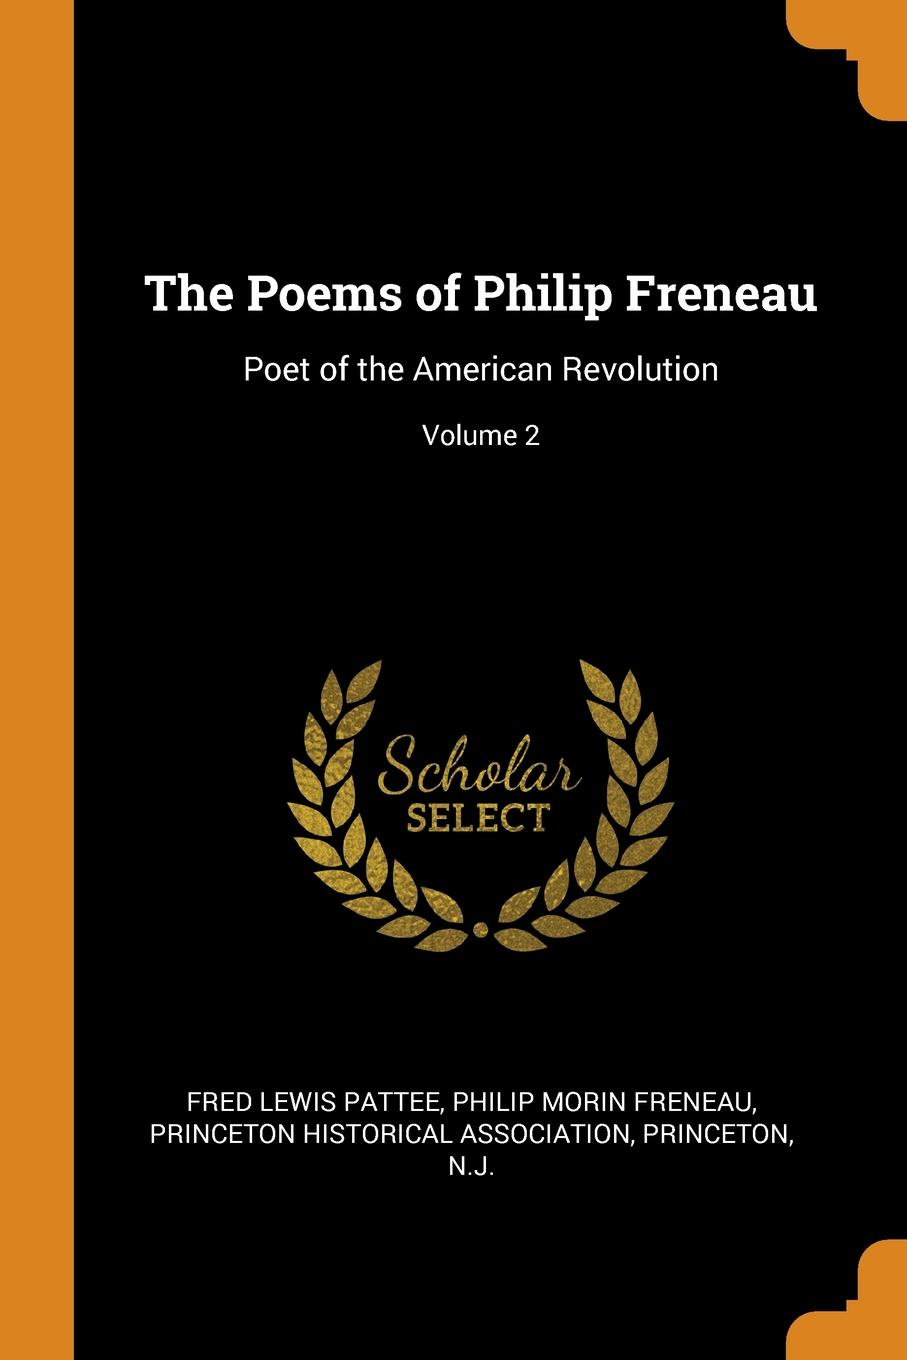 Fred Lewis Pattee, Philip Morin Freneau The Poems of Philip Freneau. Poet of the American Revolution; Volume 2 freneau philip morin the poems of philip freneau poet of the american revolution volume 1 of 3